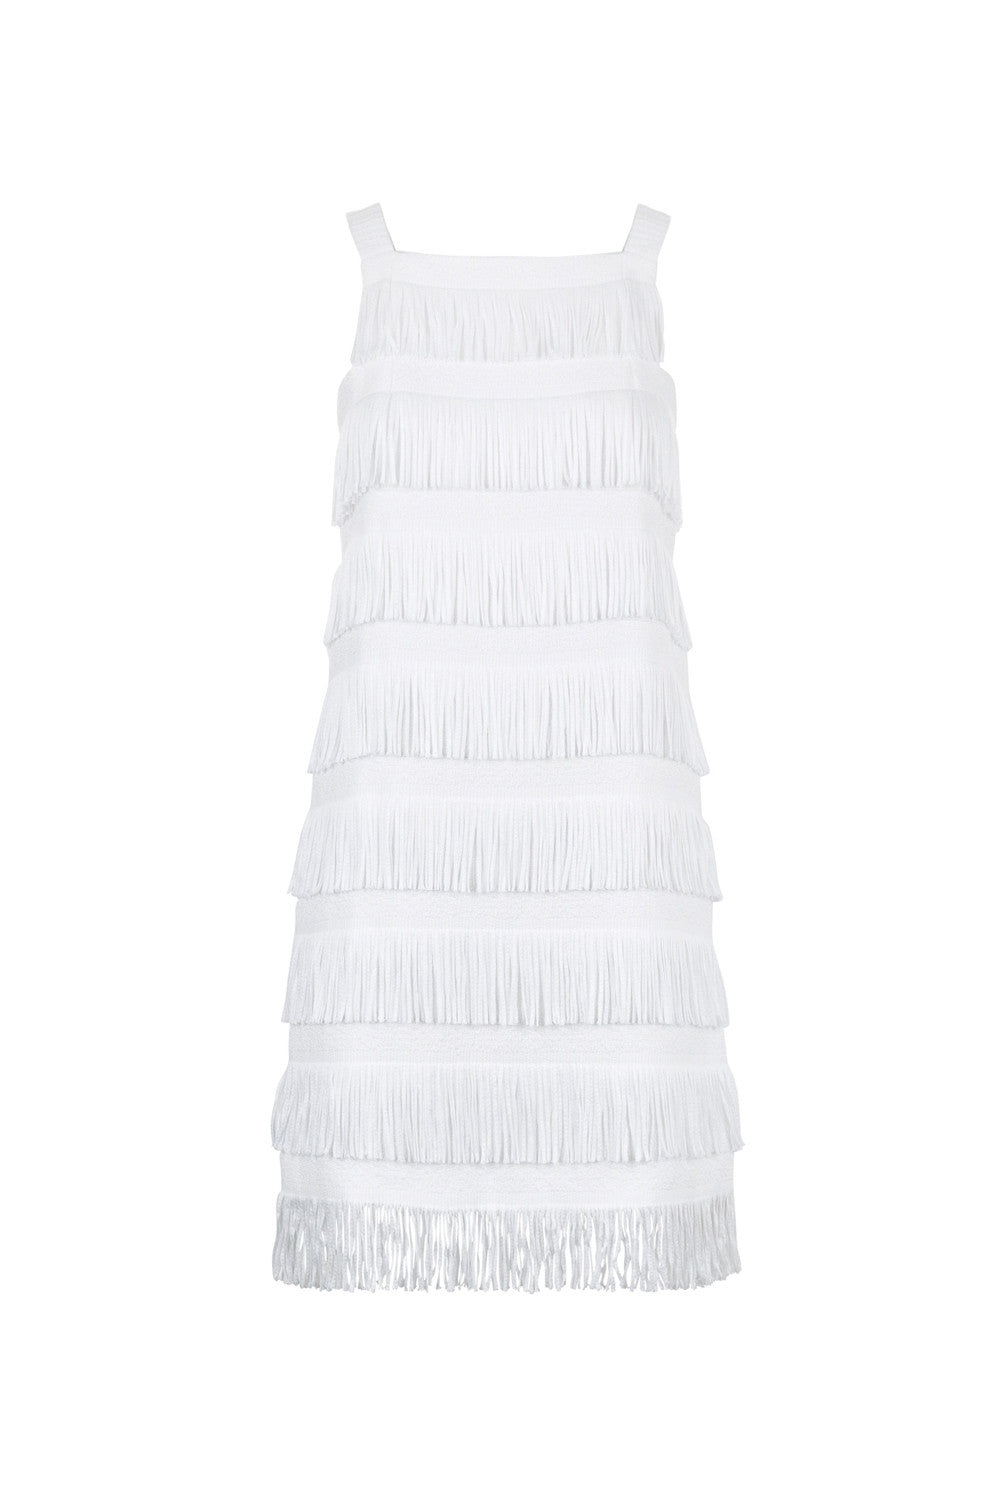 Effie Dress - White - Womenswear - Madderson London